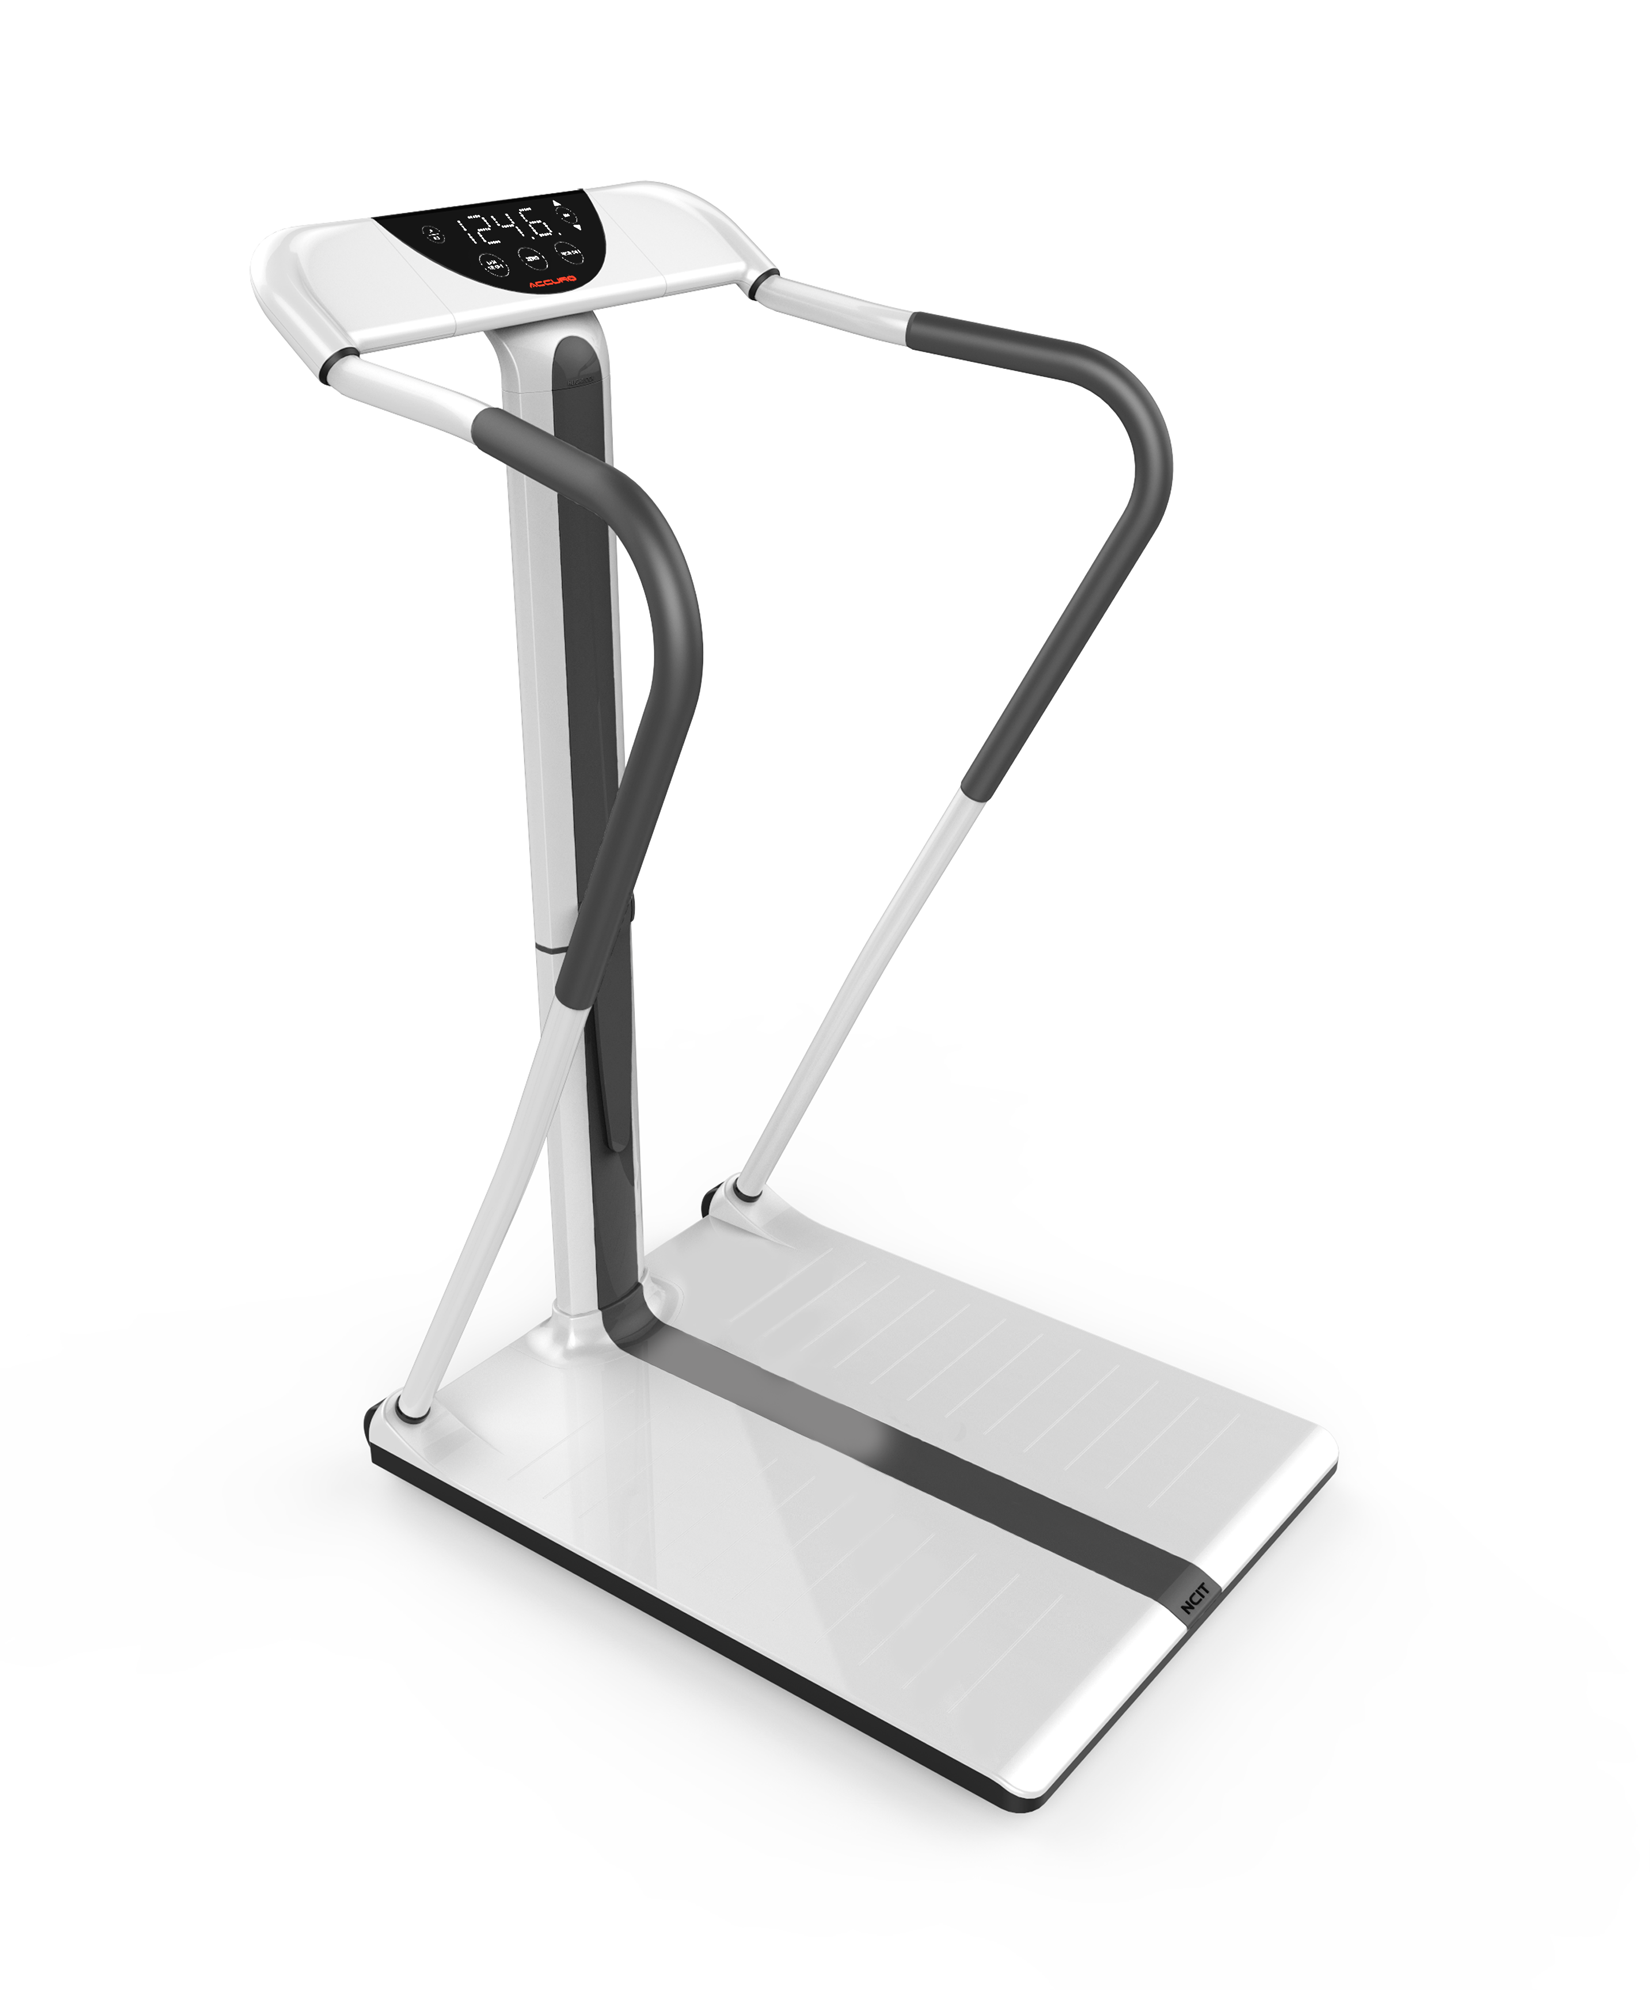 High quality render of the NCIT Digital Hand Rail Scale